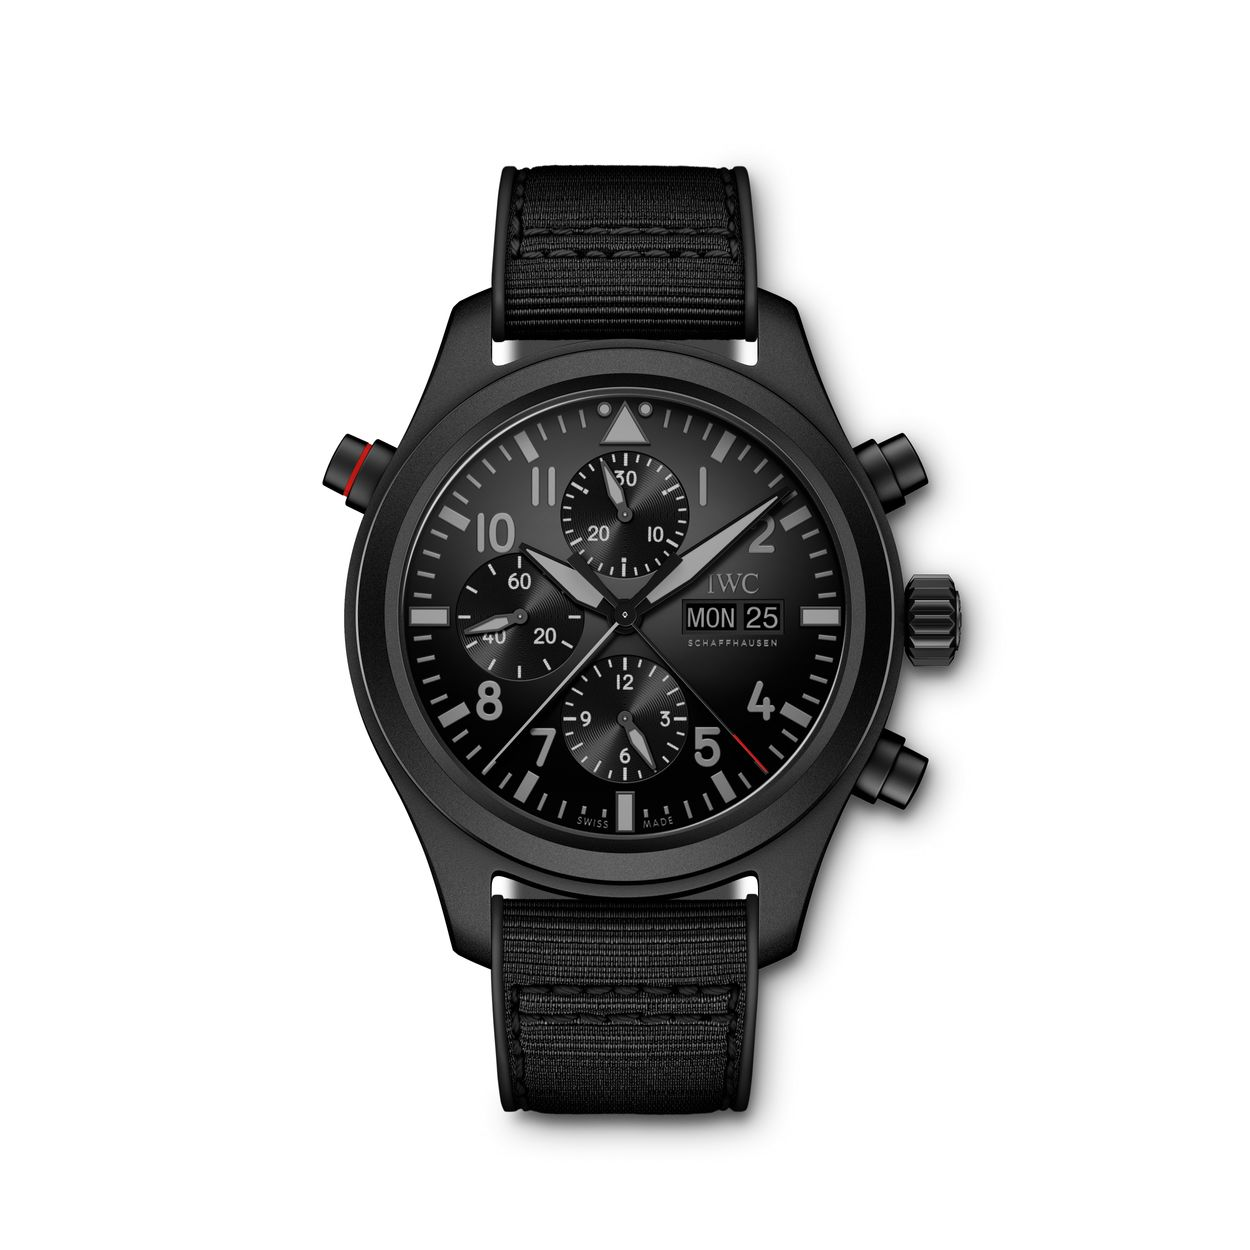 New IWC Pilot's Watches